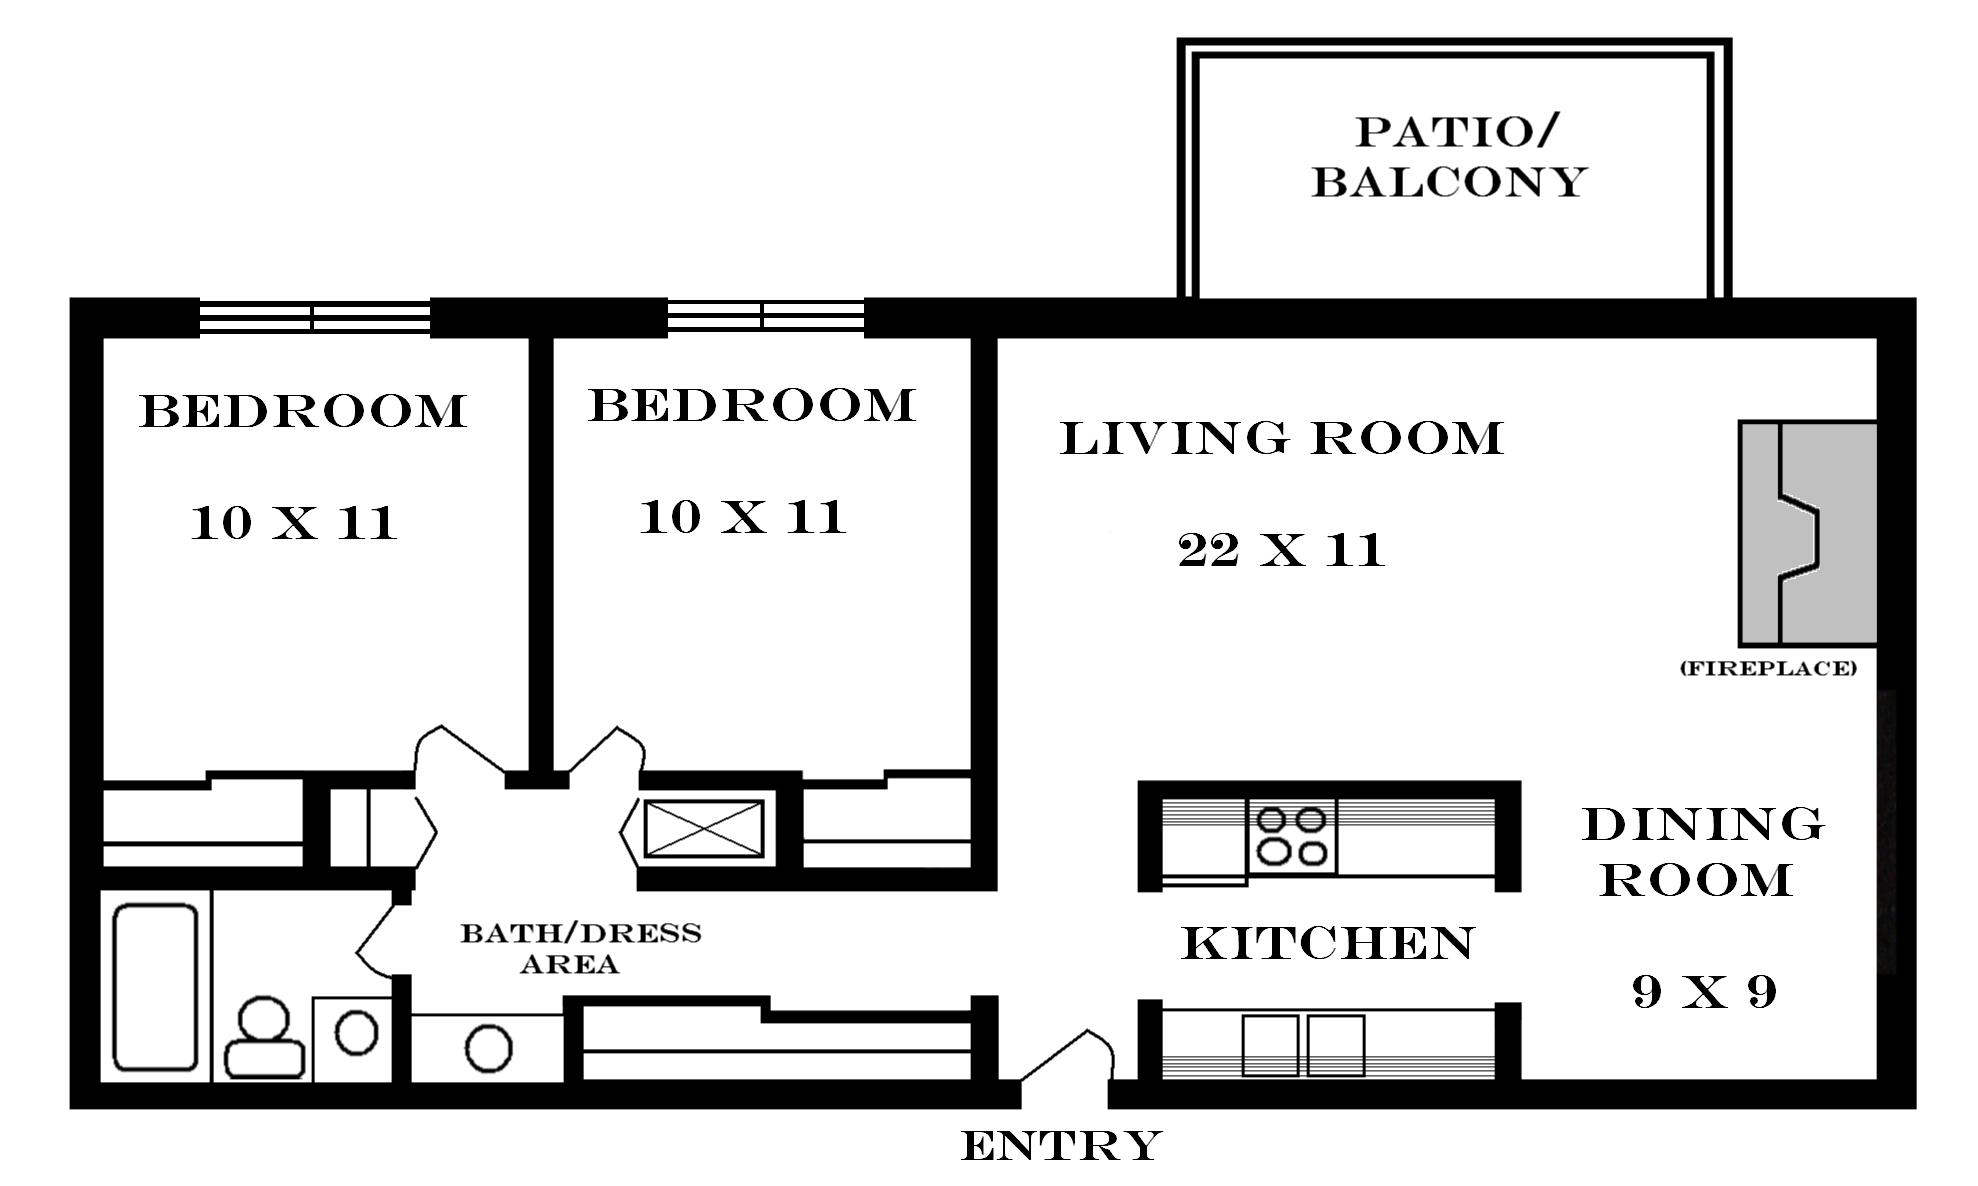 Lawrence apartments meadowbrook 2601 dover square 2 bedroom flat plans